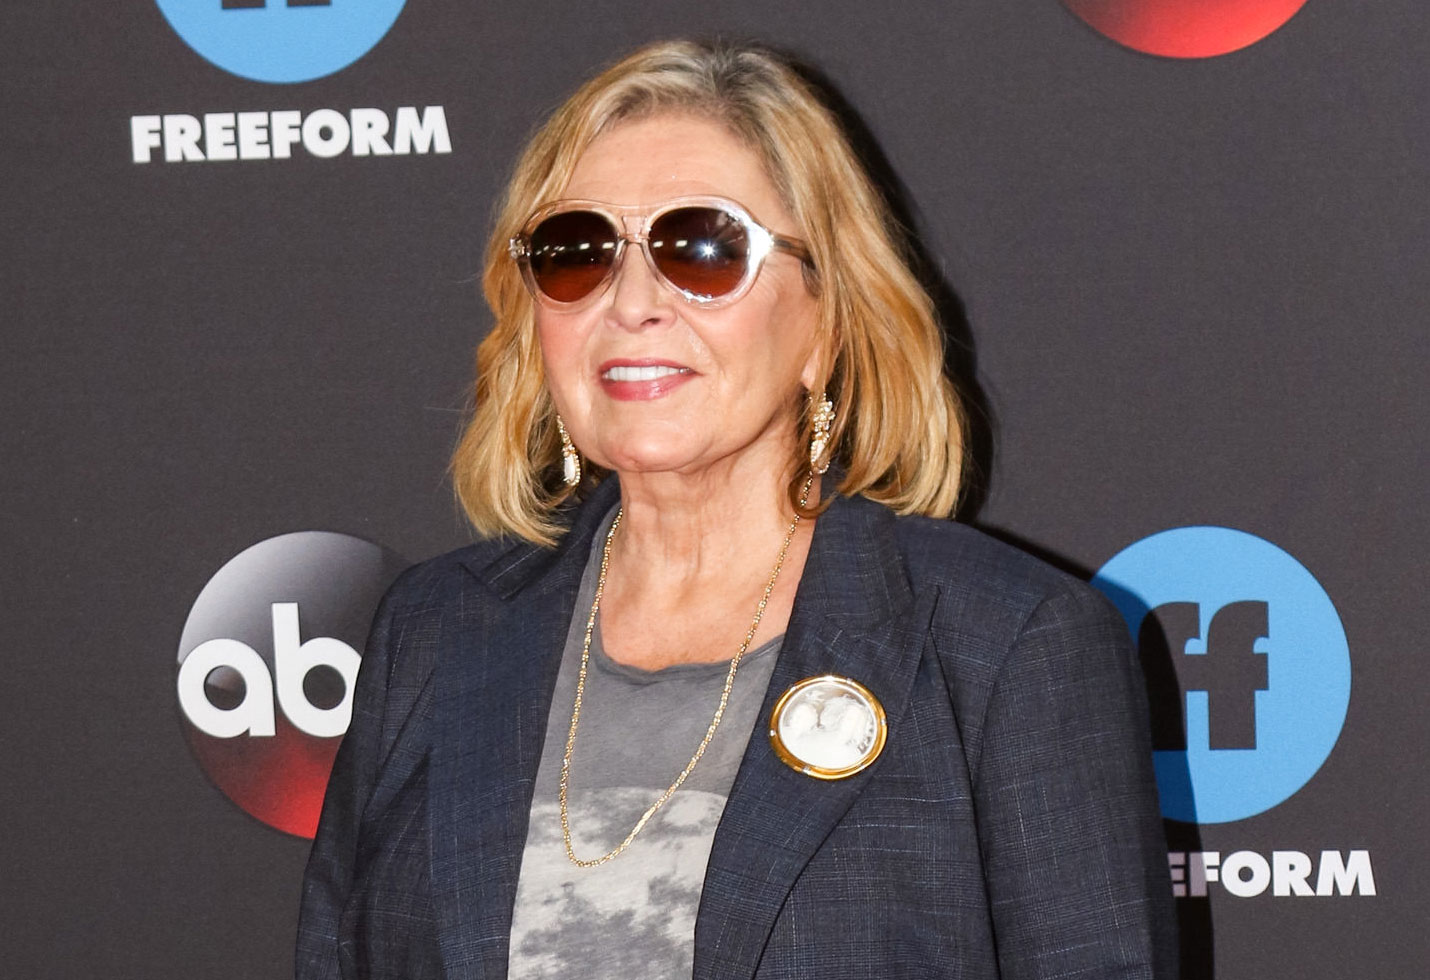 Roseanne barr jokes suicide stand-up return abc firing